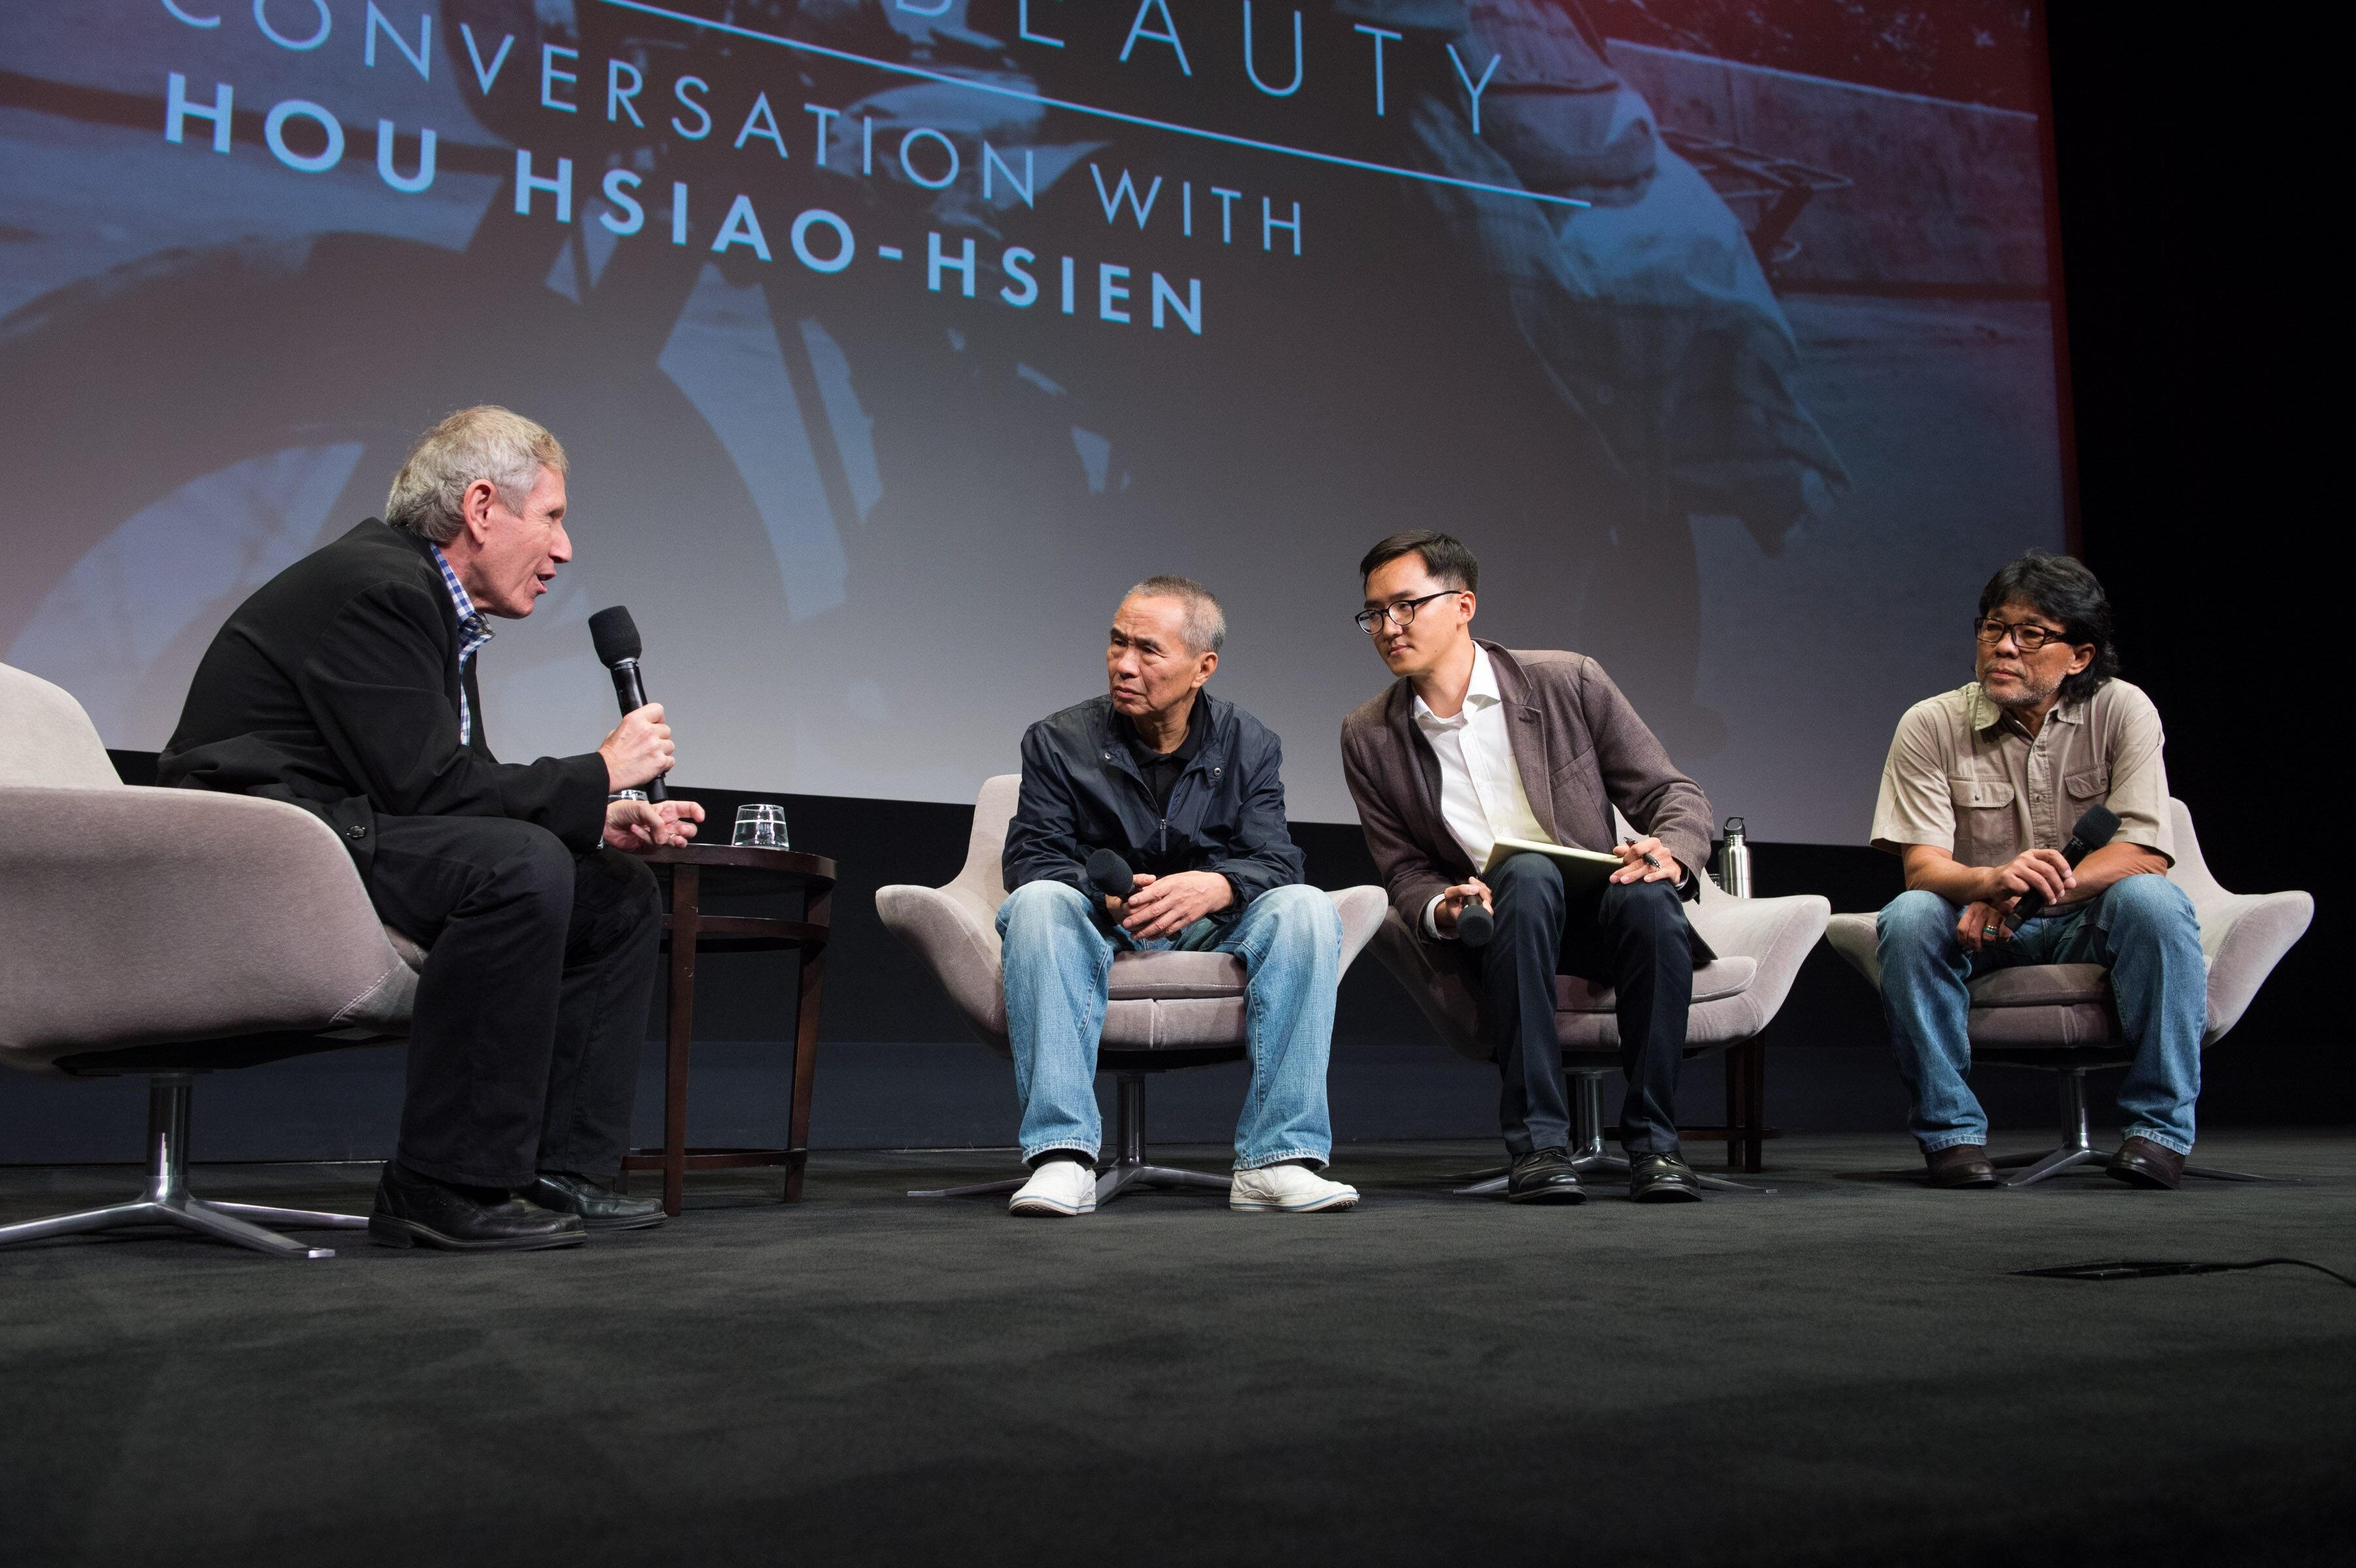 Passing Beauty: A Conversation with Hou Shiao-hsien